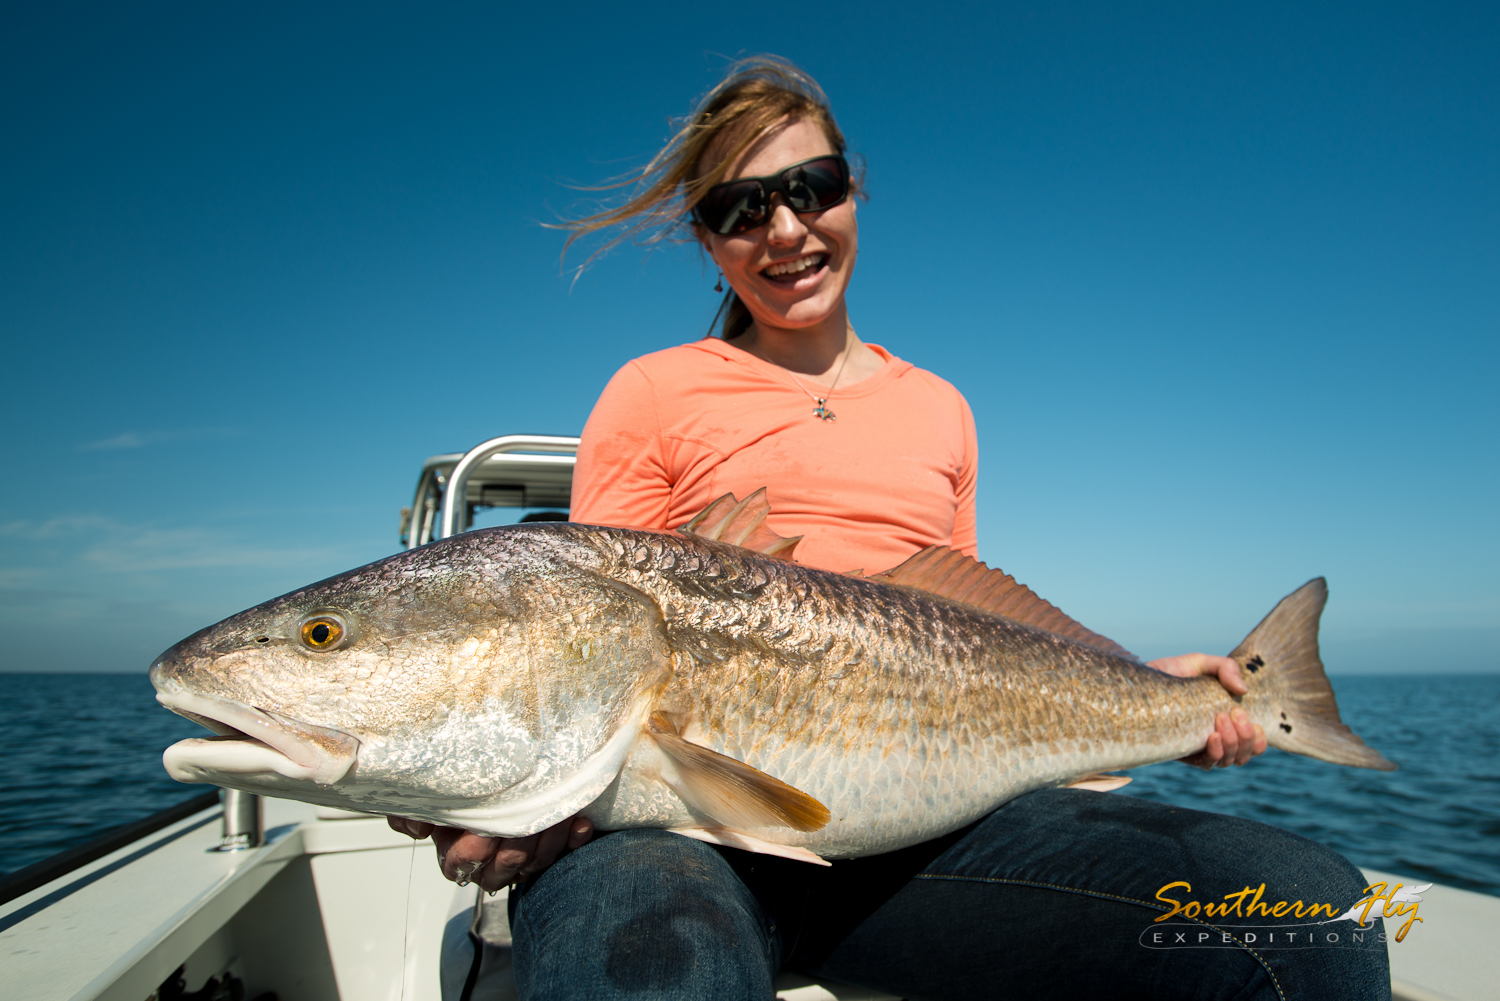 cypress cove fly fishing louisiana by southern fly expeditions and captain brandon keck